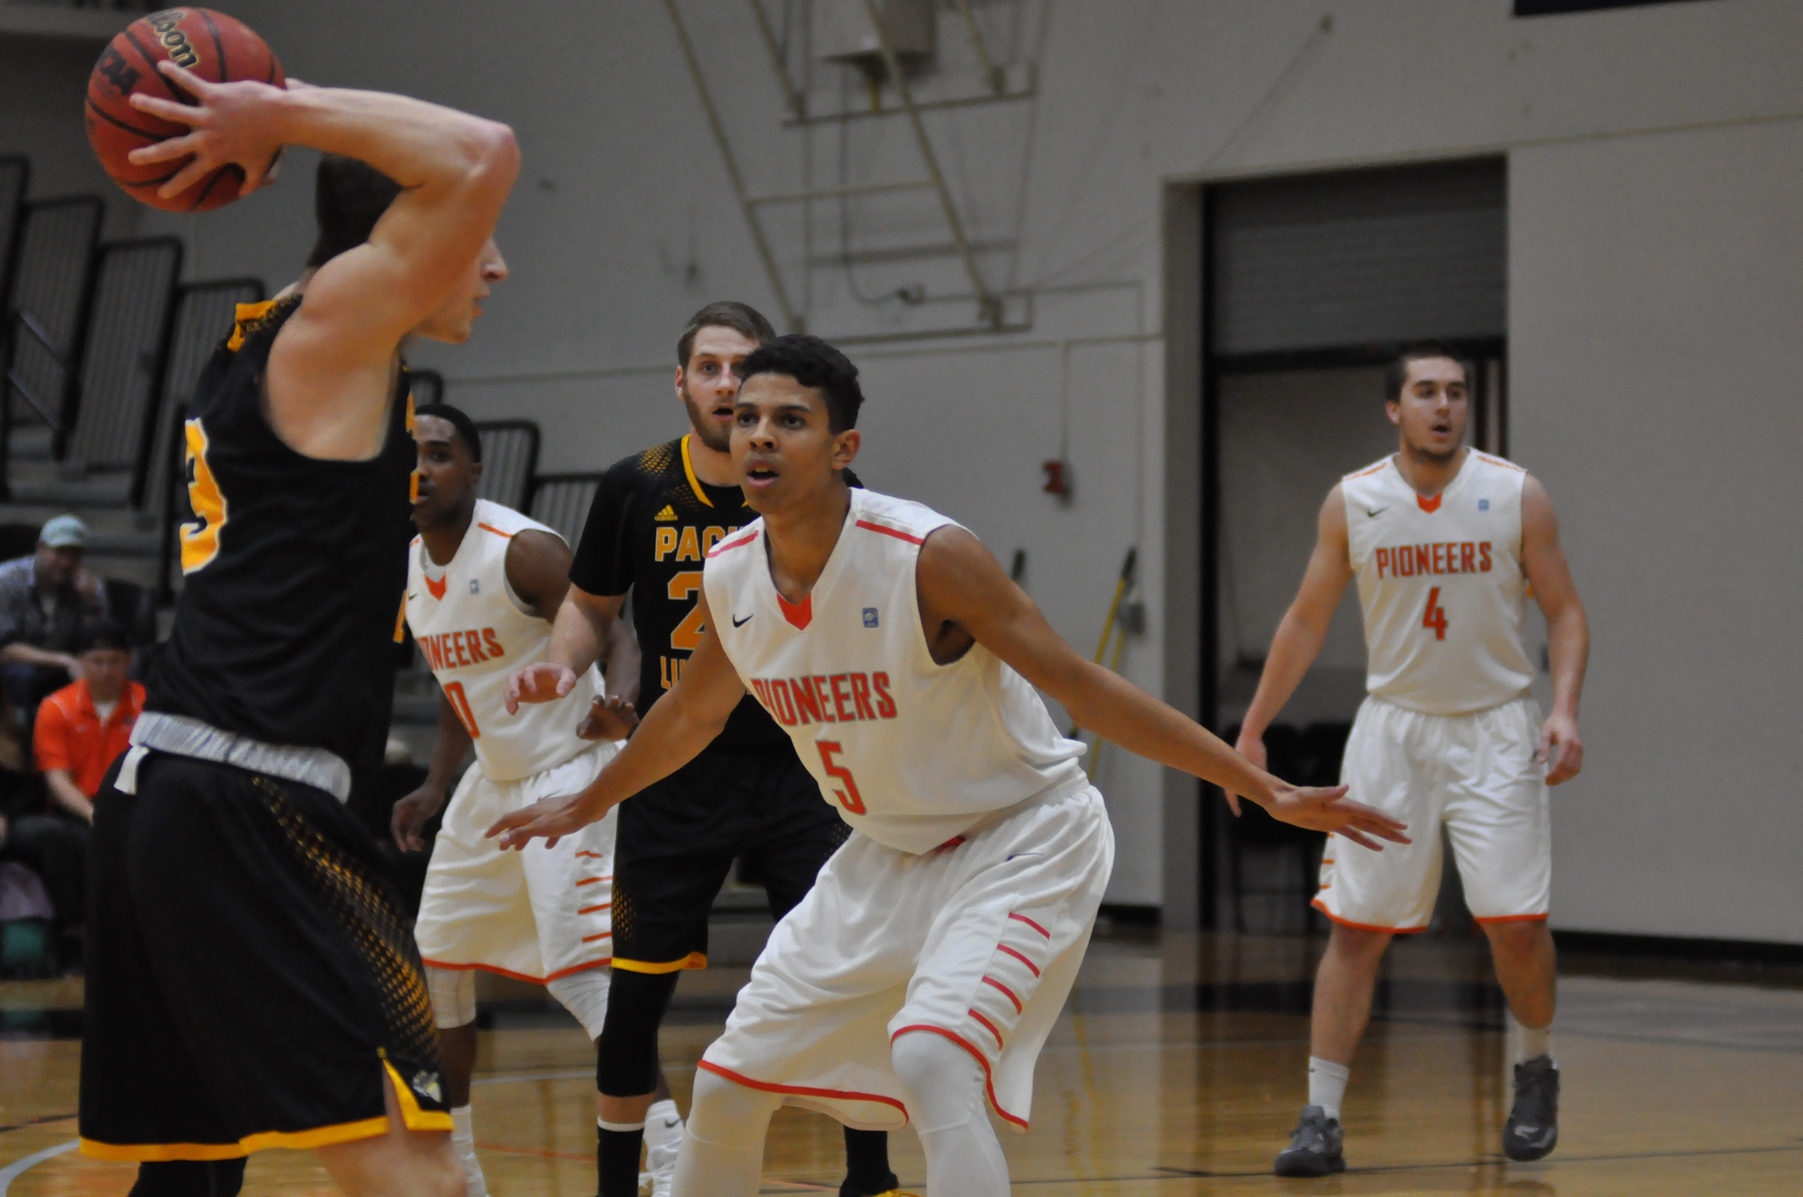 Lewis & Clark gets first win of season in NWC opener